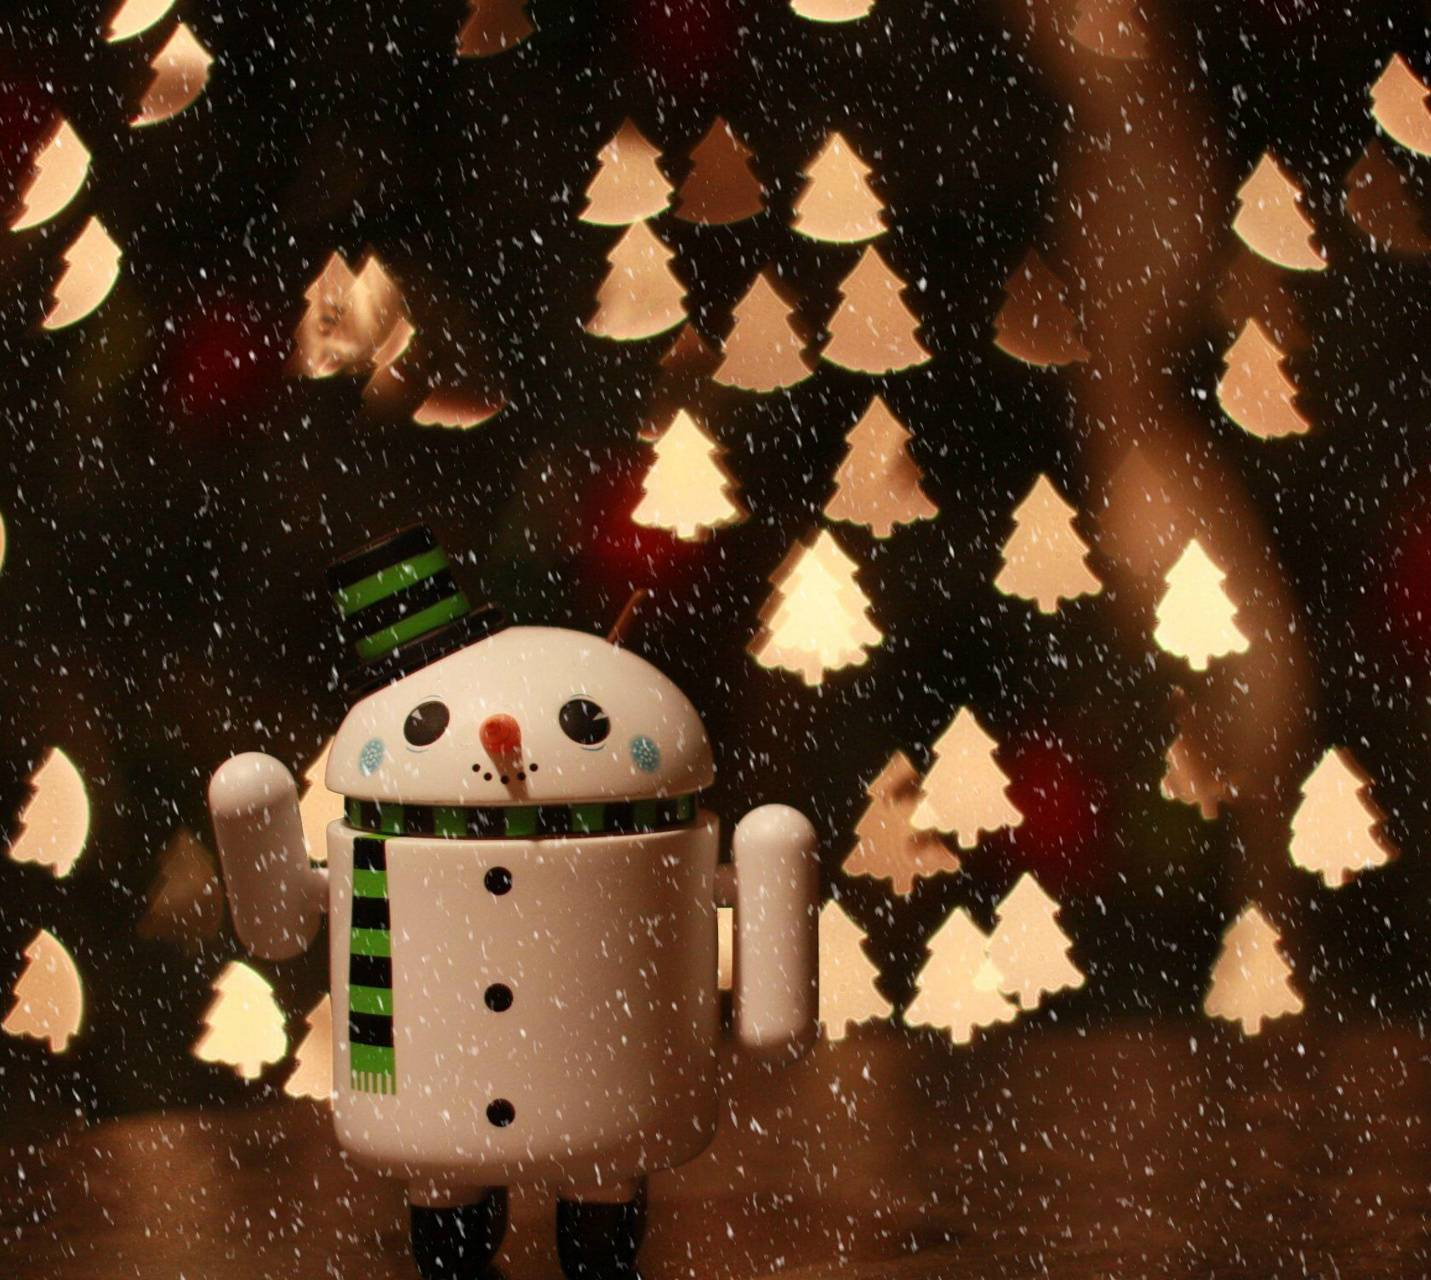 Snow Android